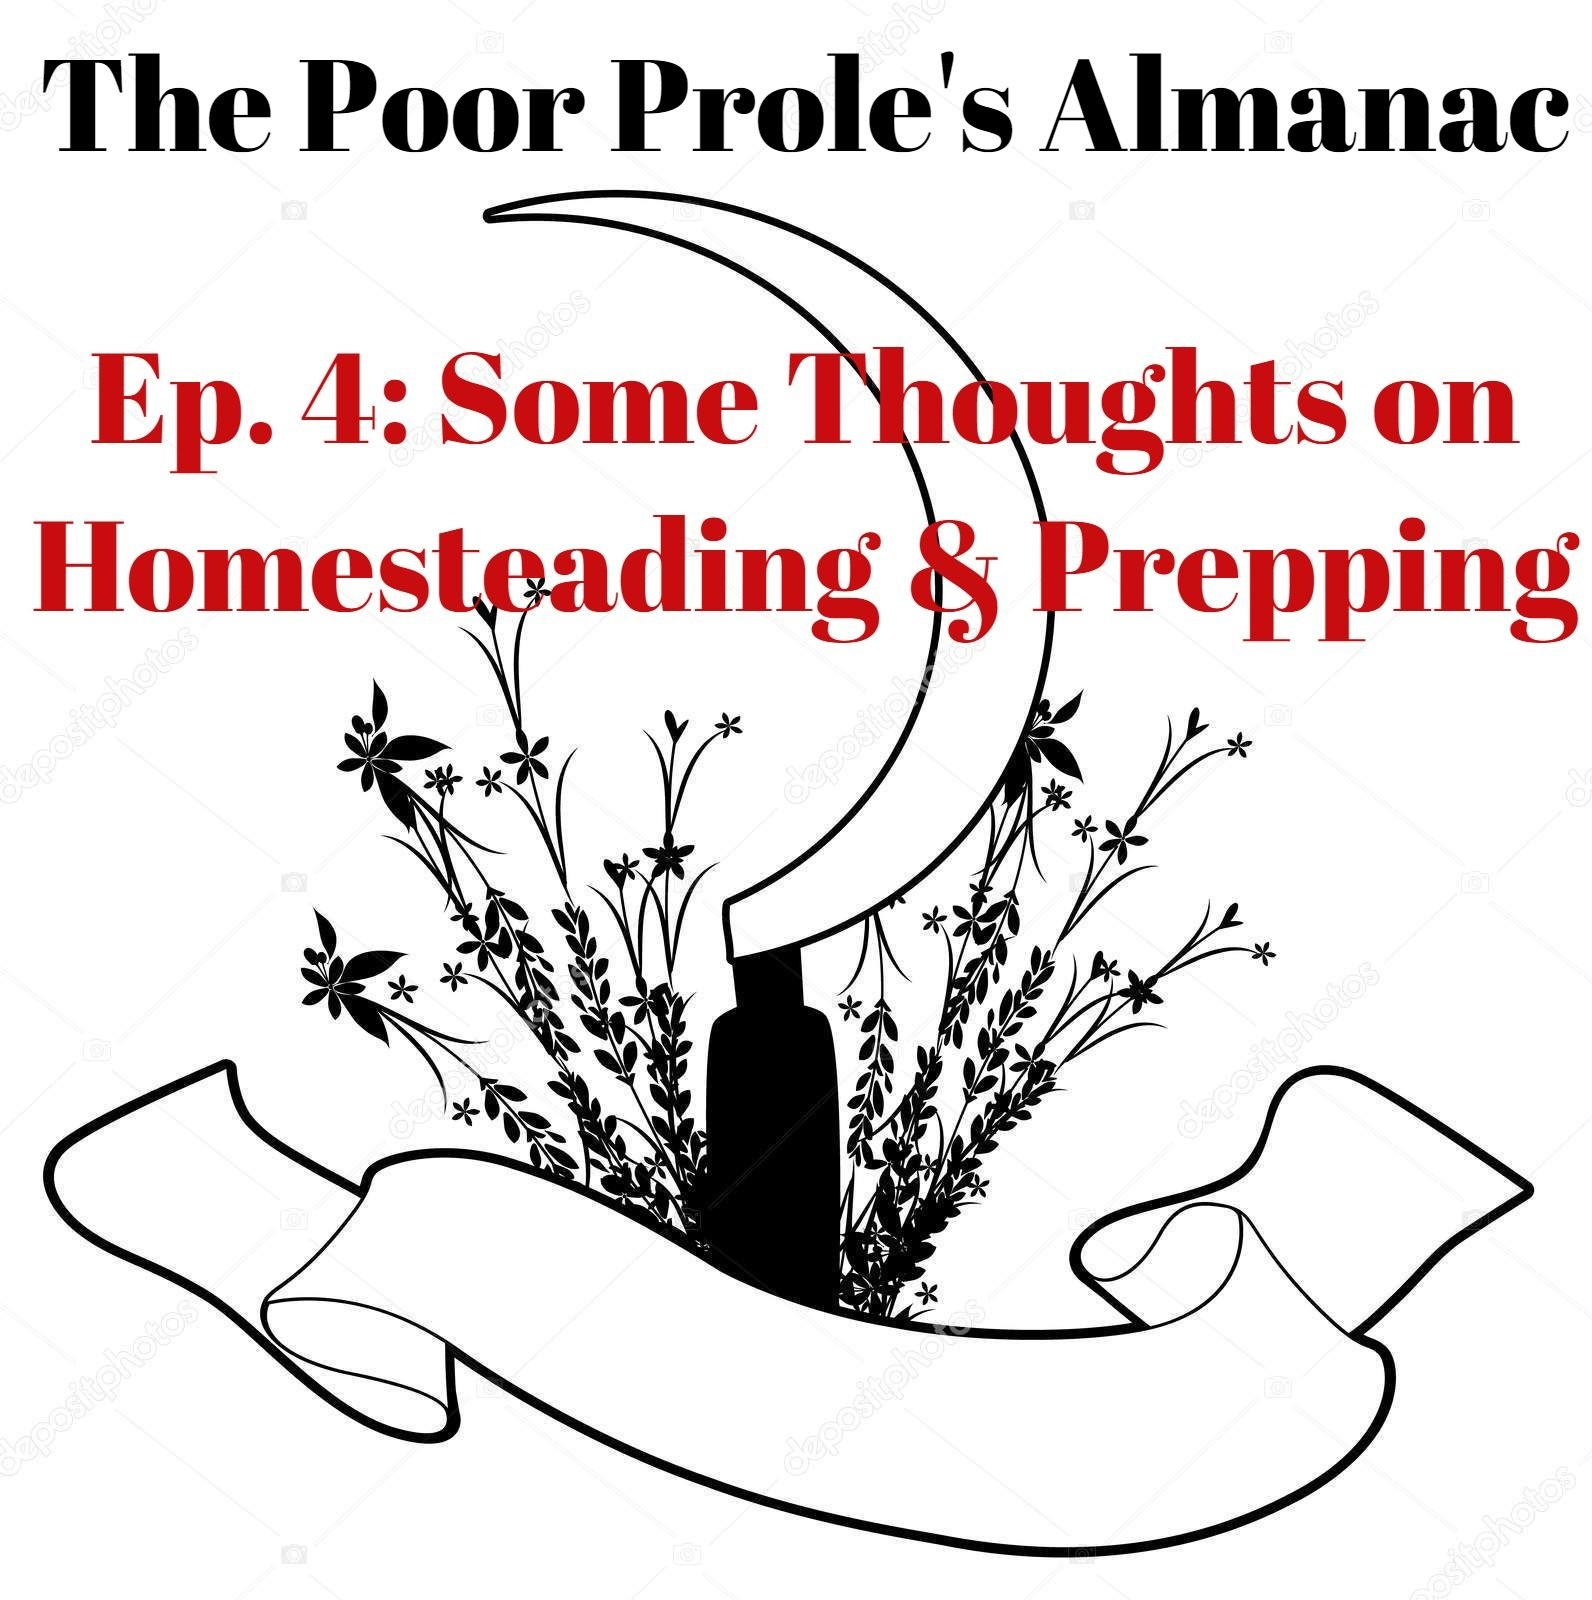 Some Thoughts on Homesteading and Prepping